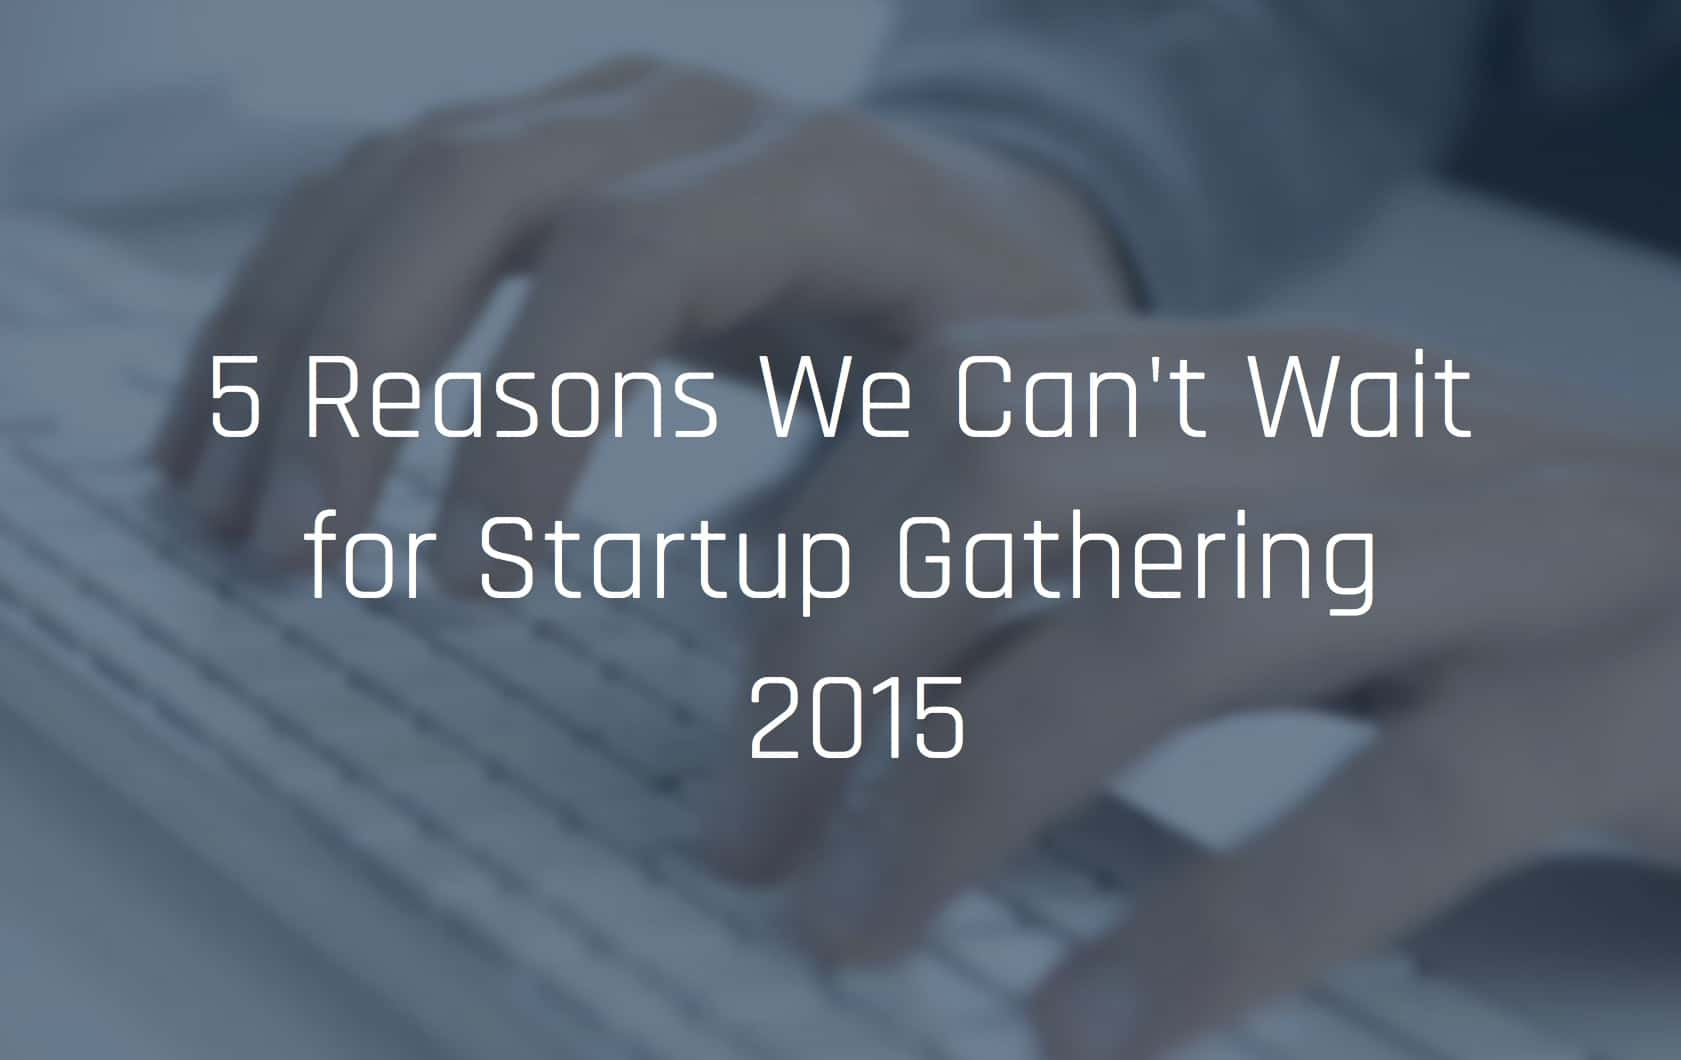 Startup Events 2015